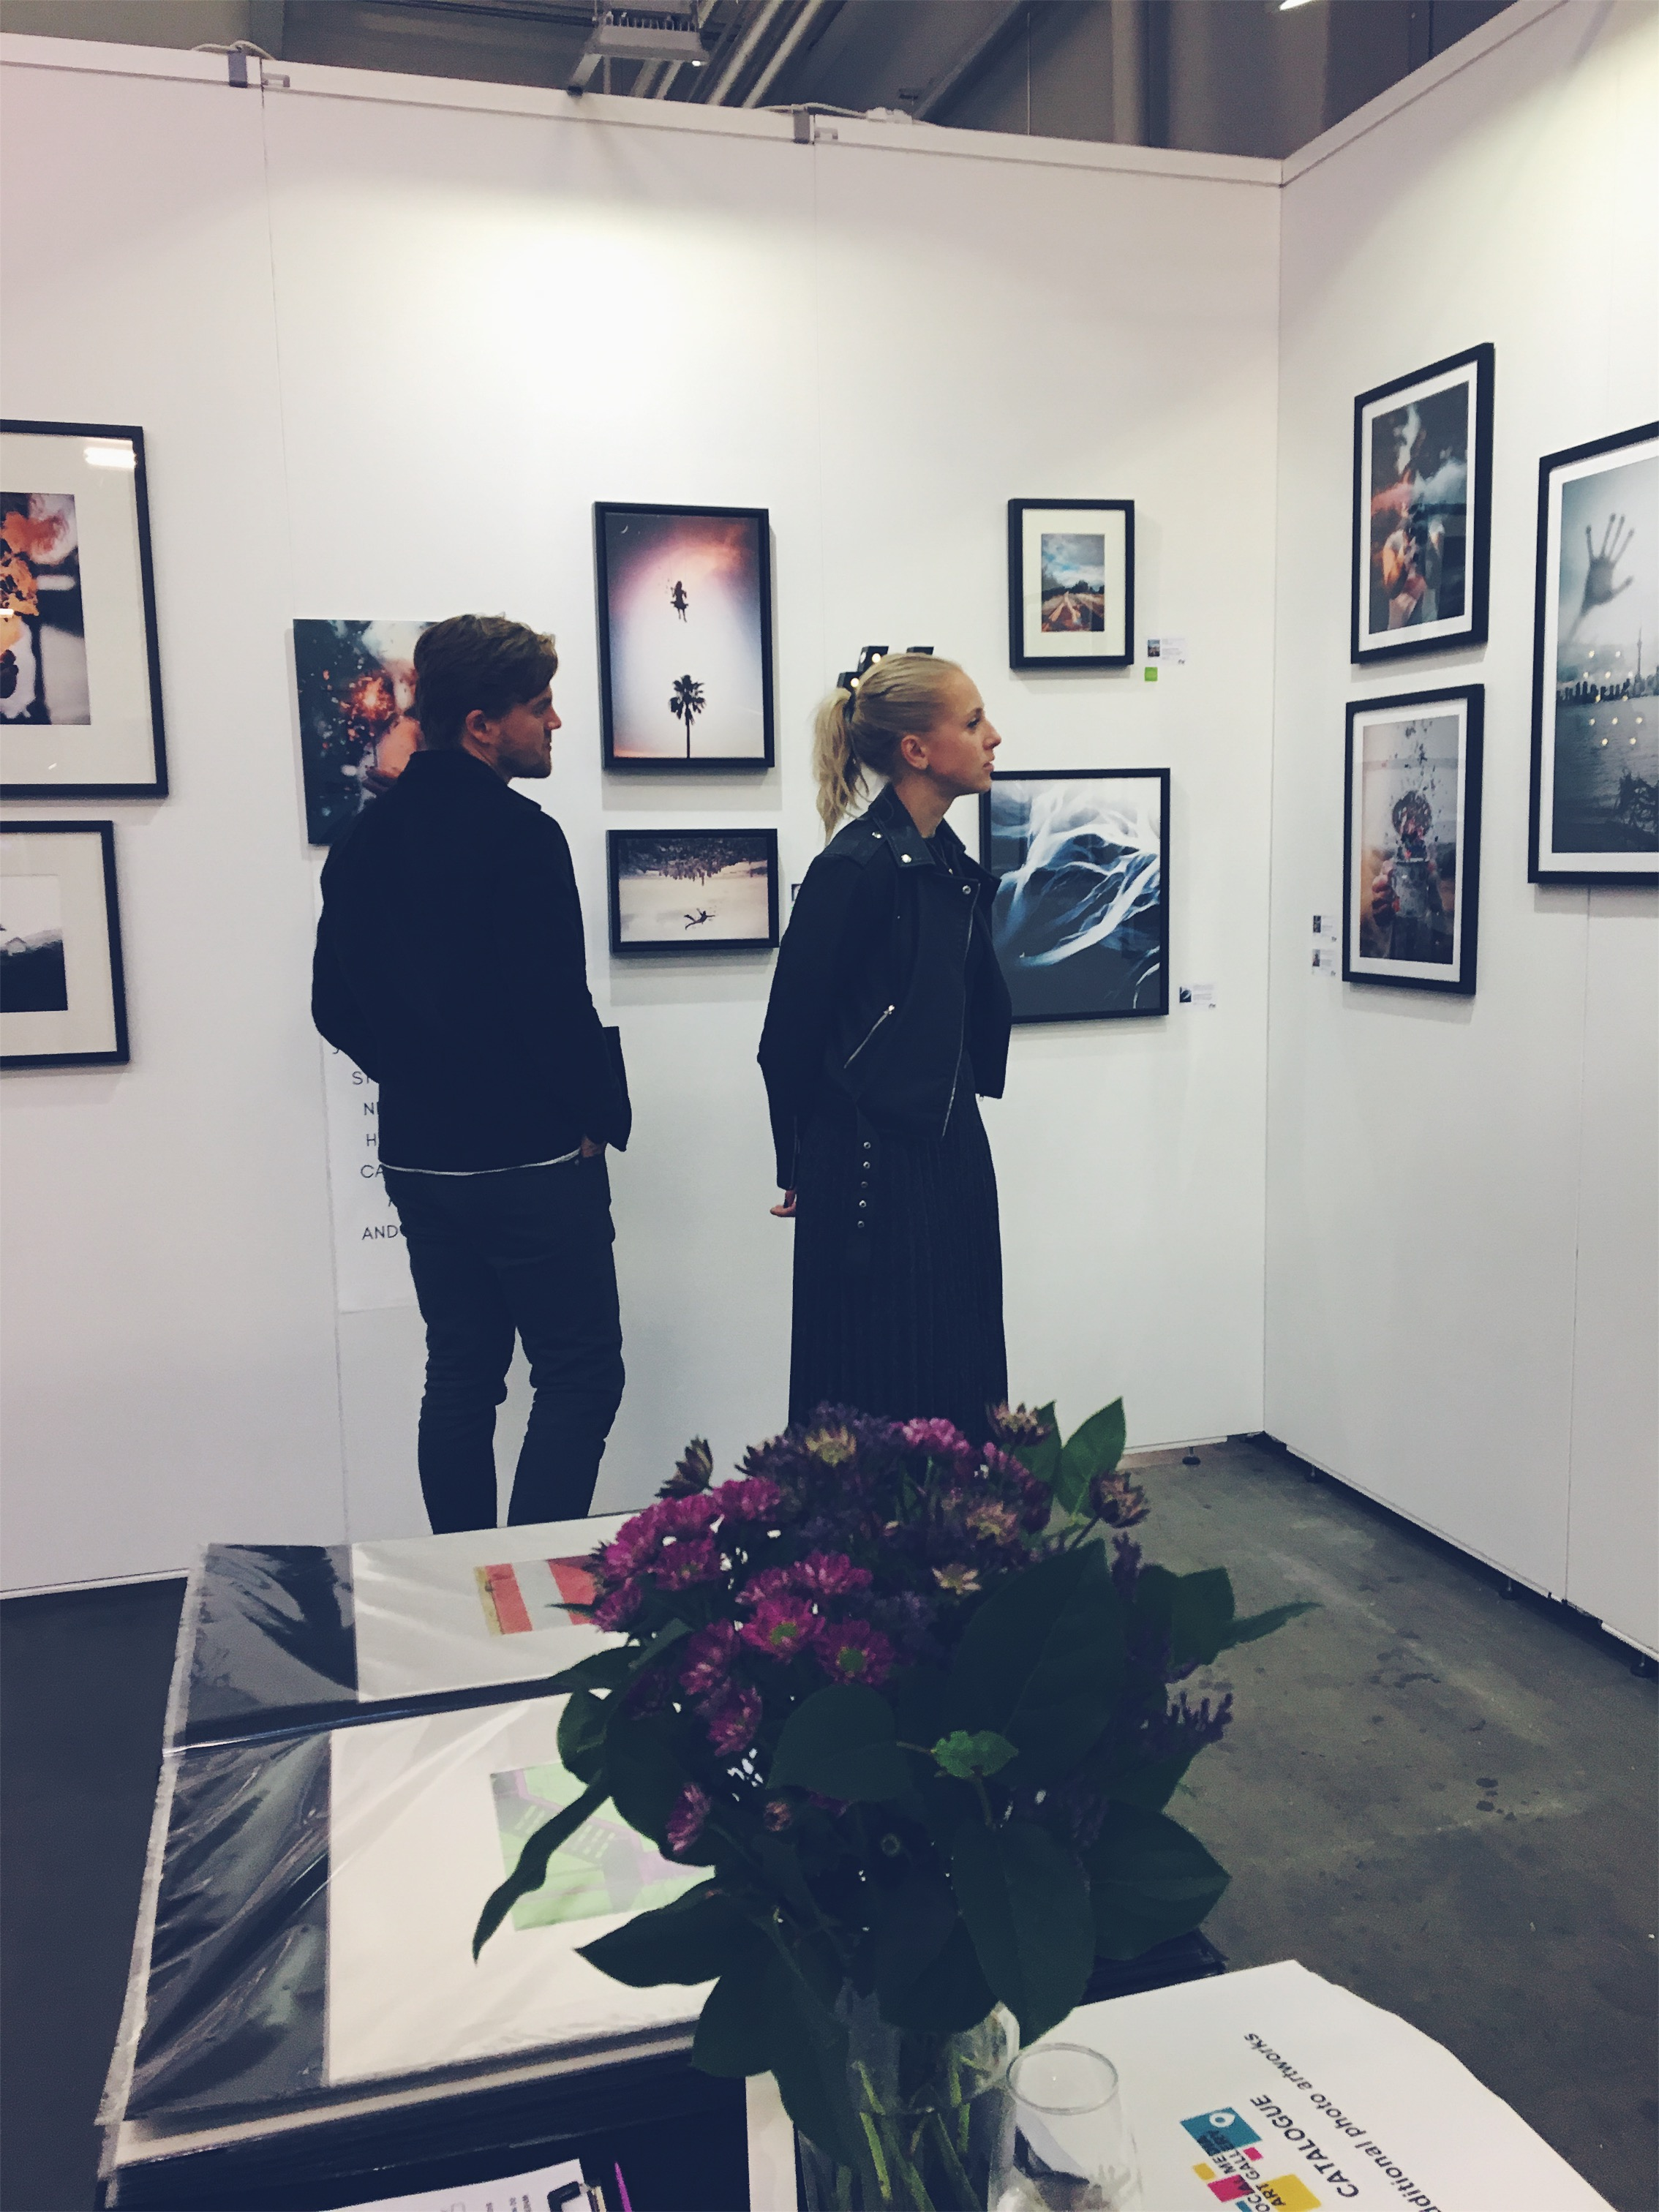 Visitors of Social Media Art Gallery